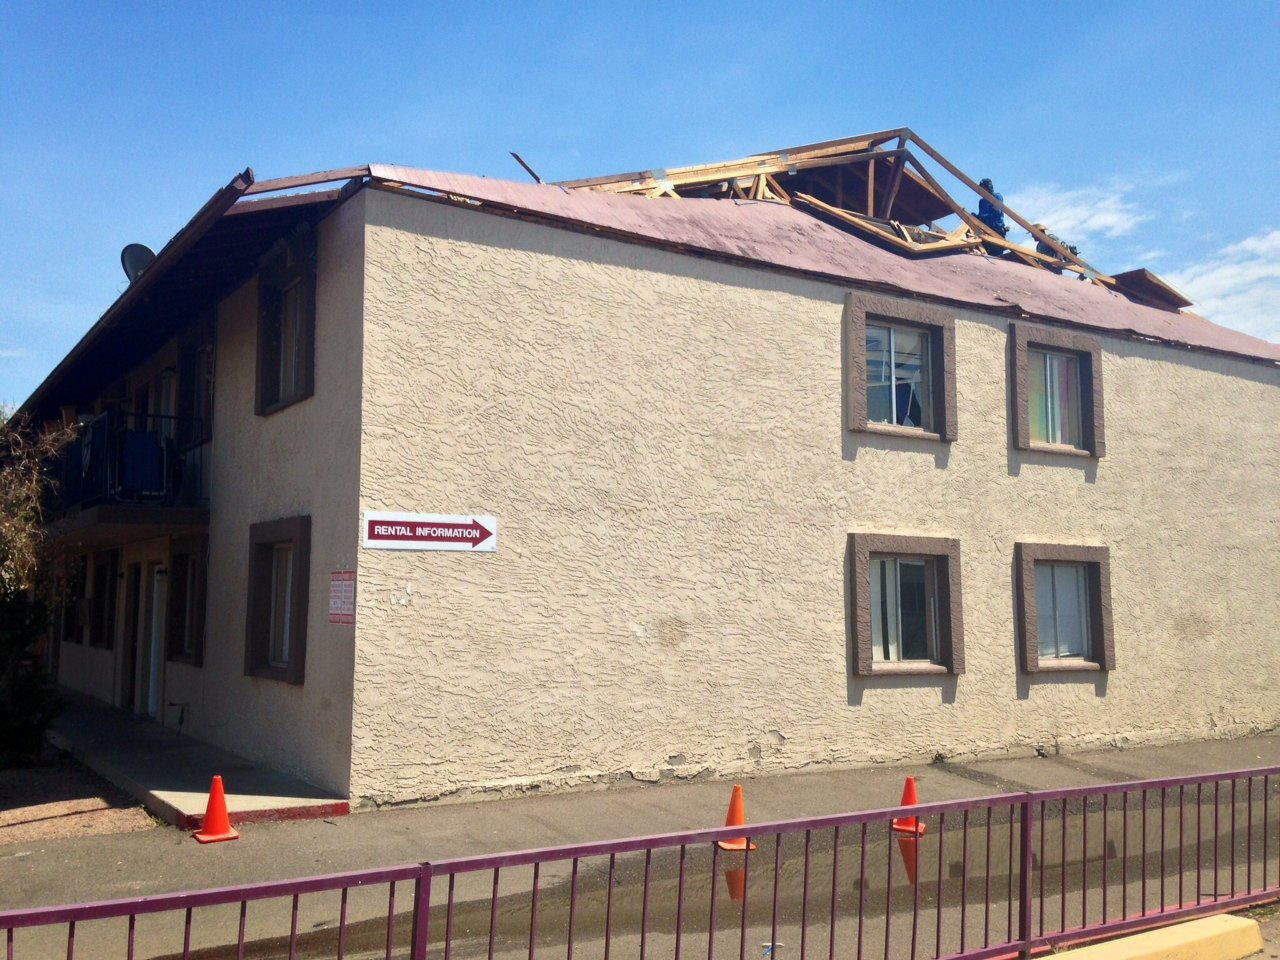 A roof collapsed at Running Brooks apartments Friday night. (Source: Christina Batson, cbs5az.com)